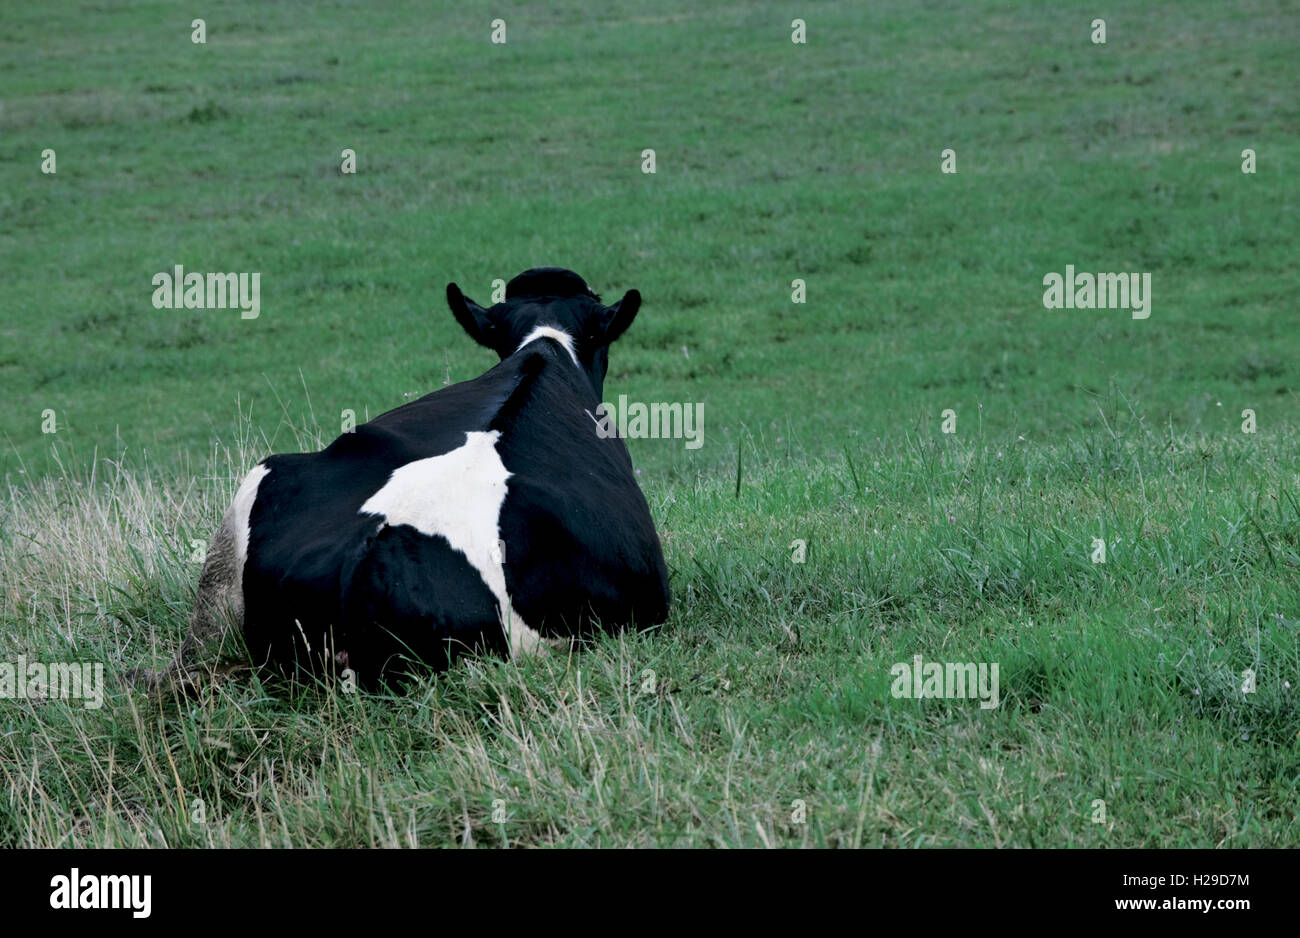 Dairy Cow Looking out over Field - Stock Image